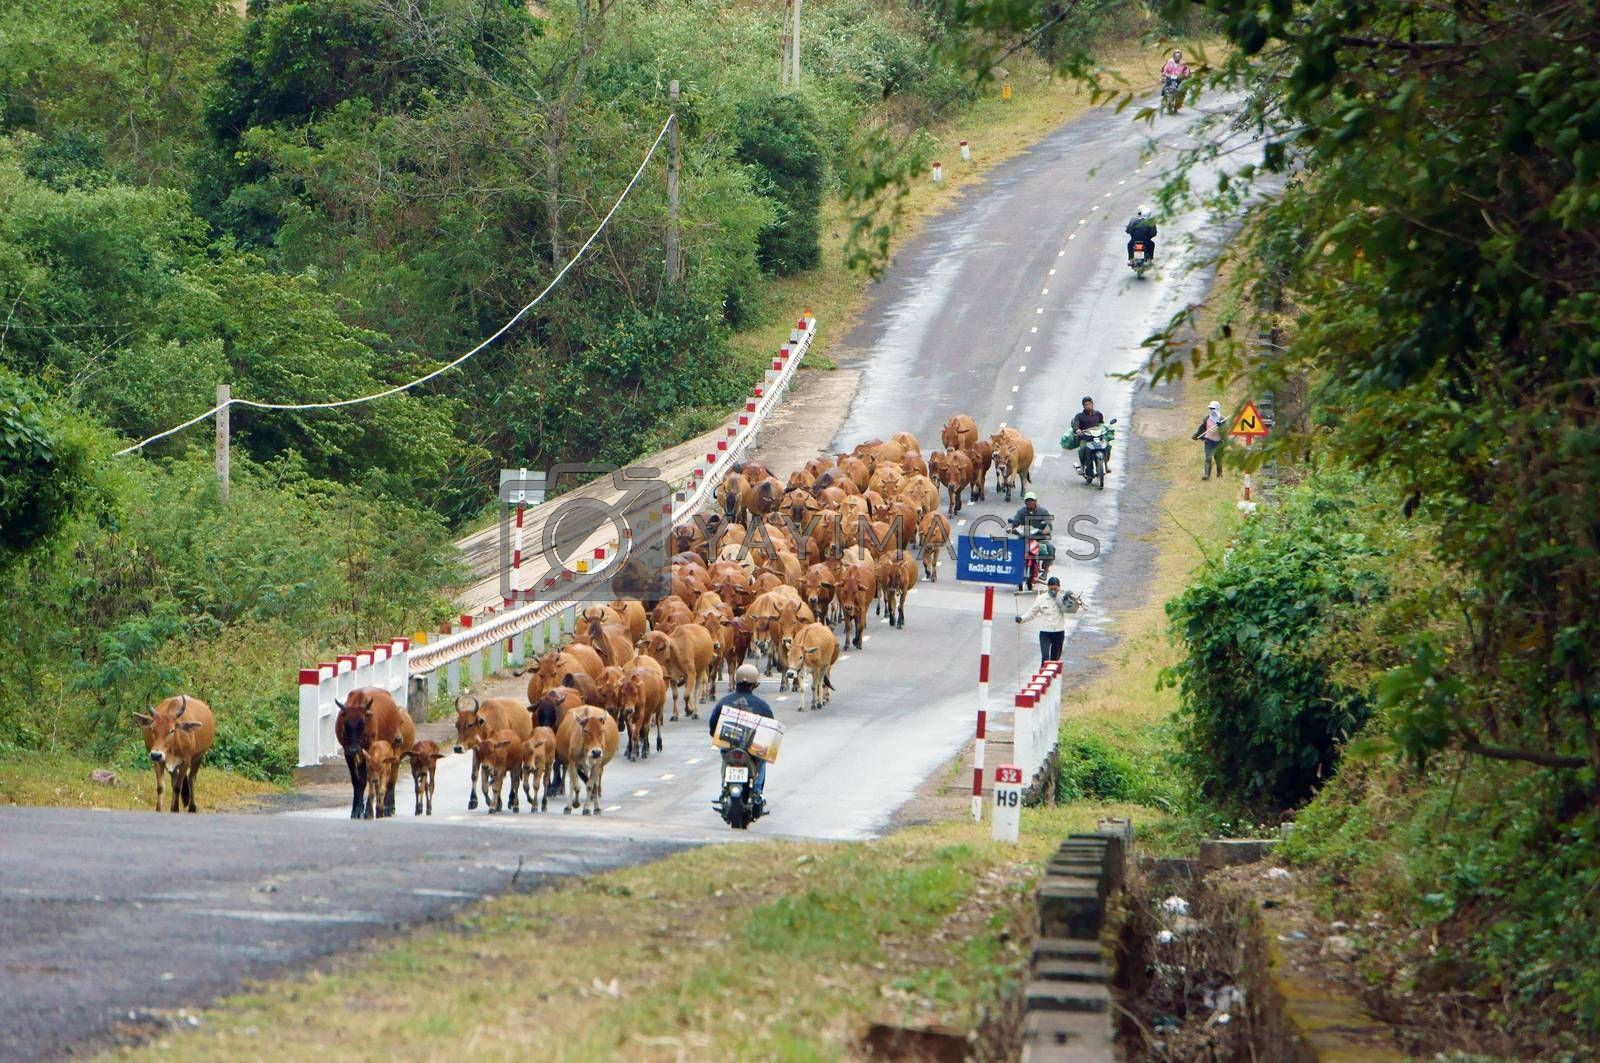 DAKLAK, VIET NAM-  DECEMBER 30: A herd of dense cow going on the road with motorbike at Daklak, December 30, 2012